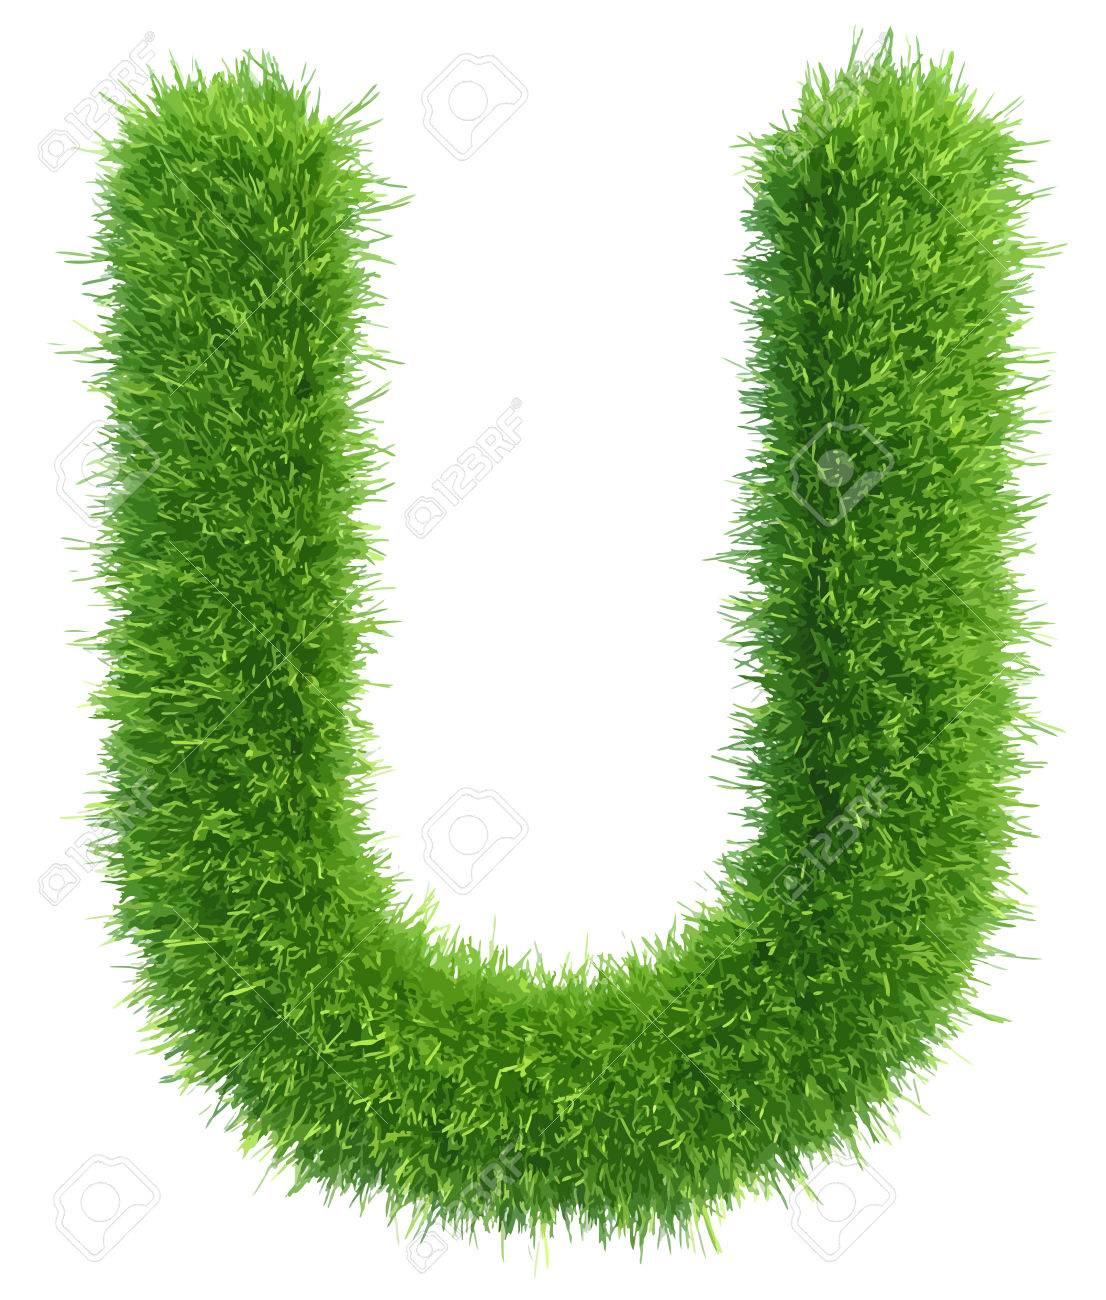 Vector capital letter U from grass on white background. - 46273015